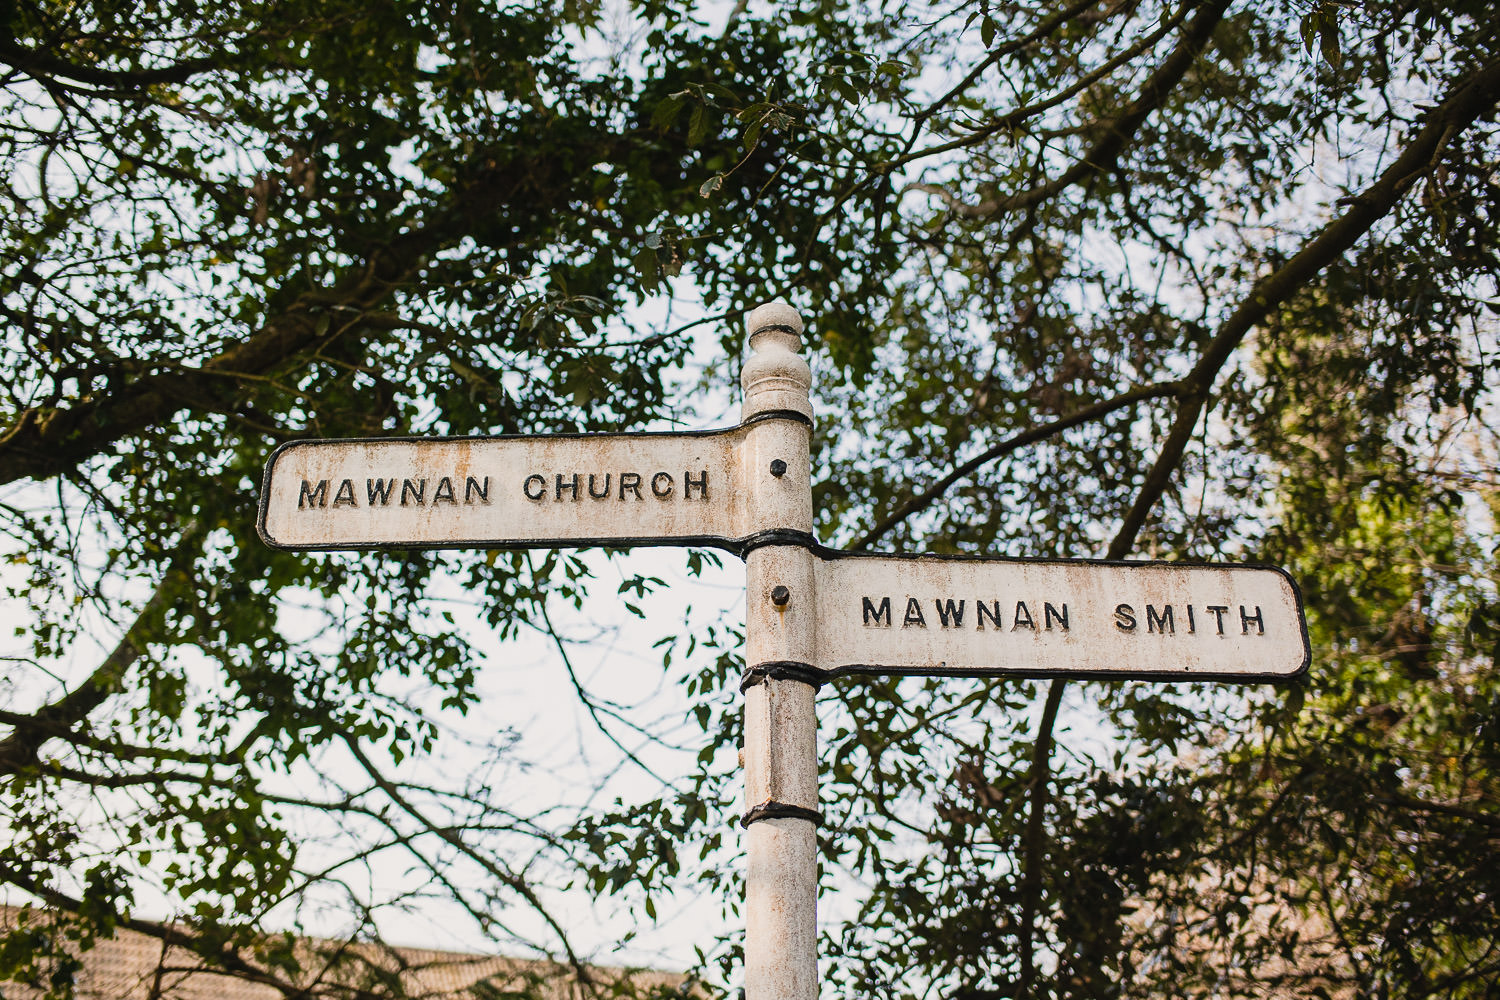 Mawnan Church road sign